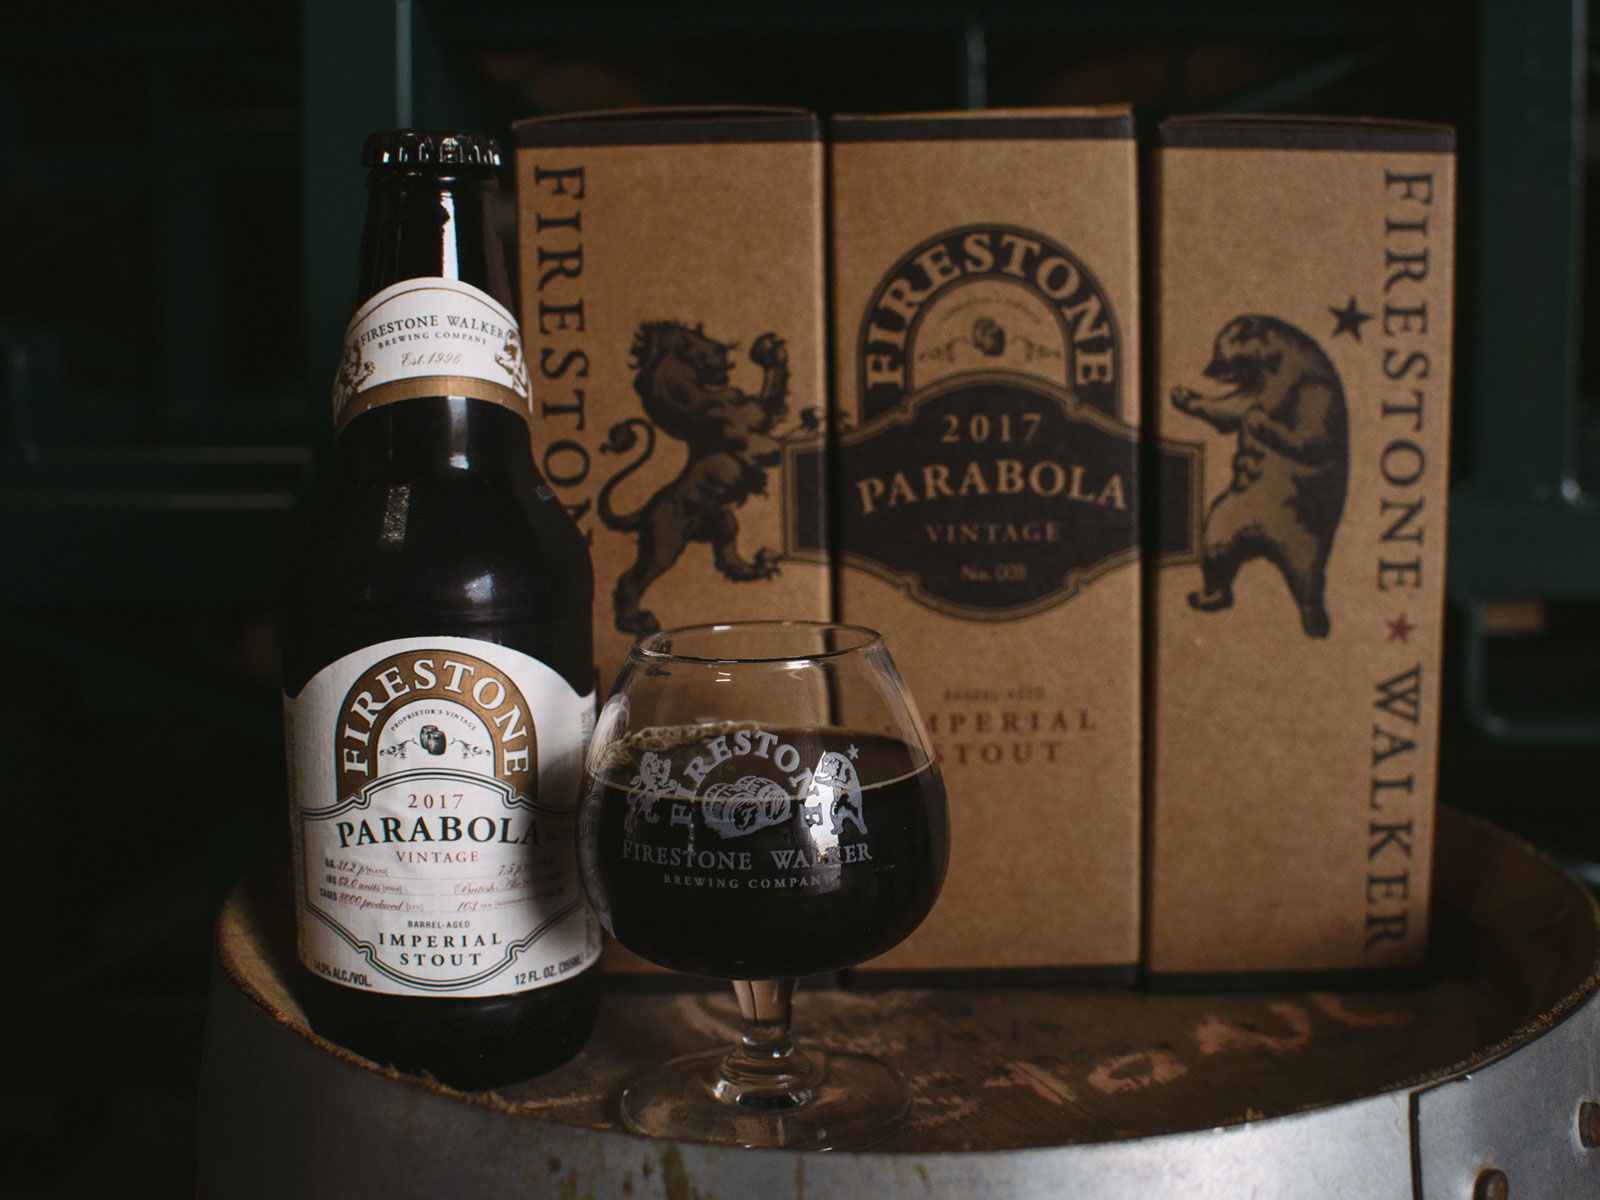 Parabola by Firestone Walker Brewing Company